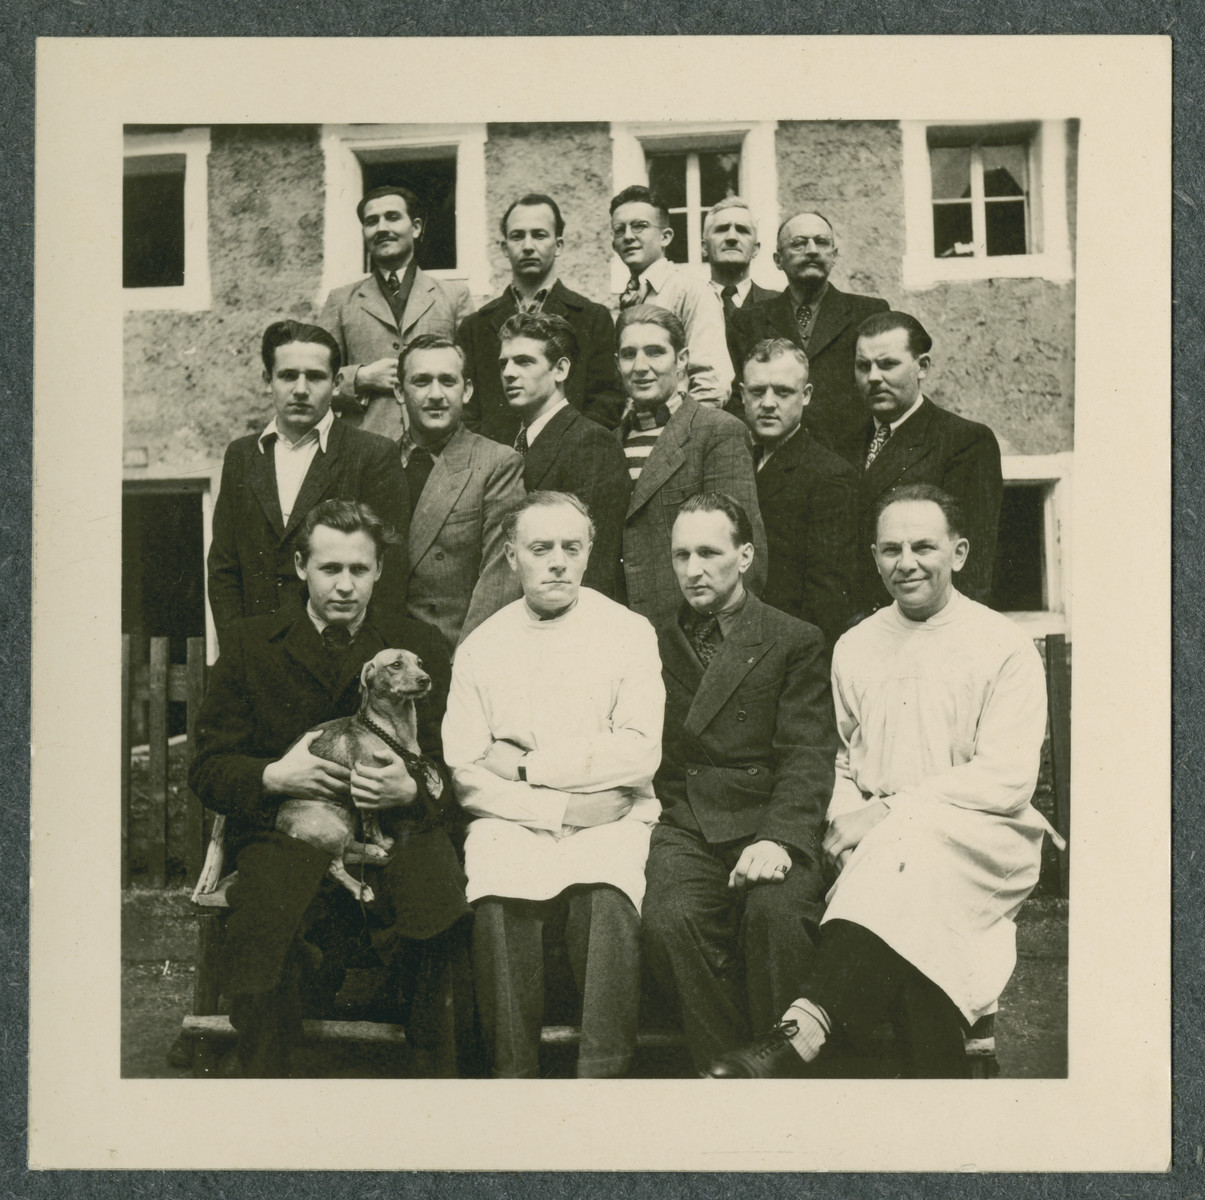 Group portrait of prisoners, one holding a small dog, in the Tittmoning camp.